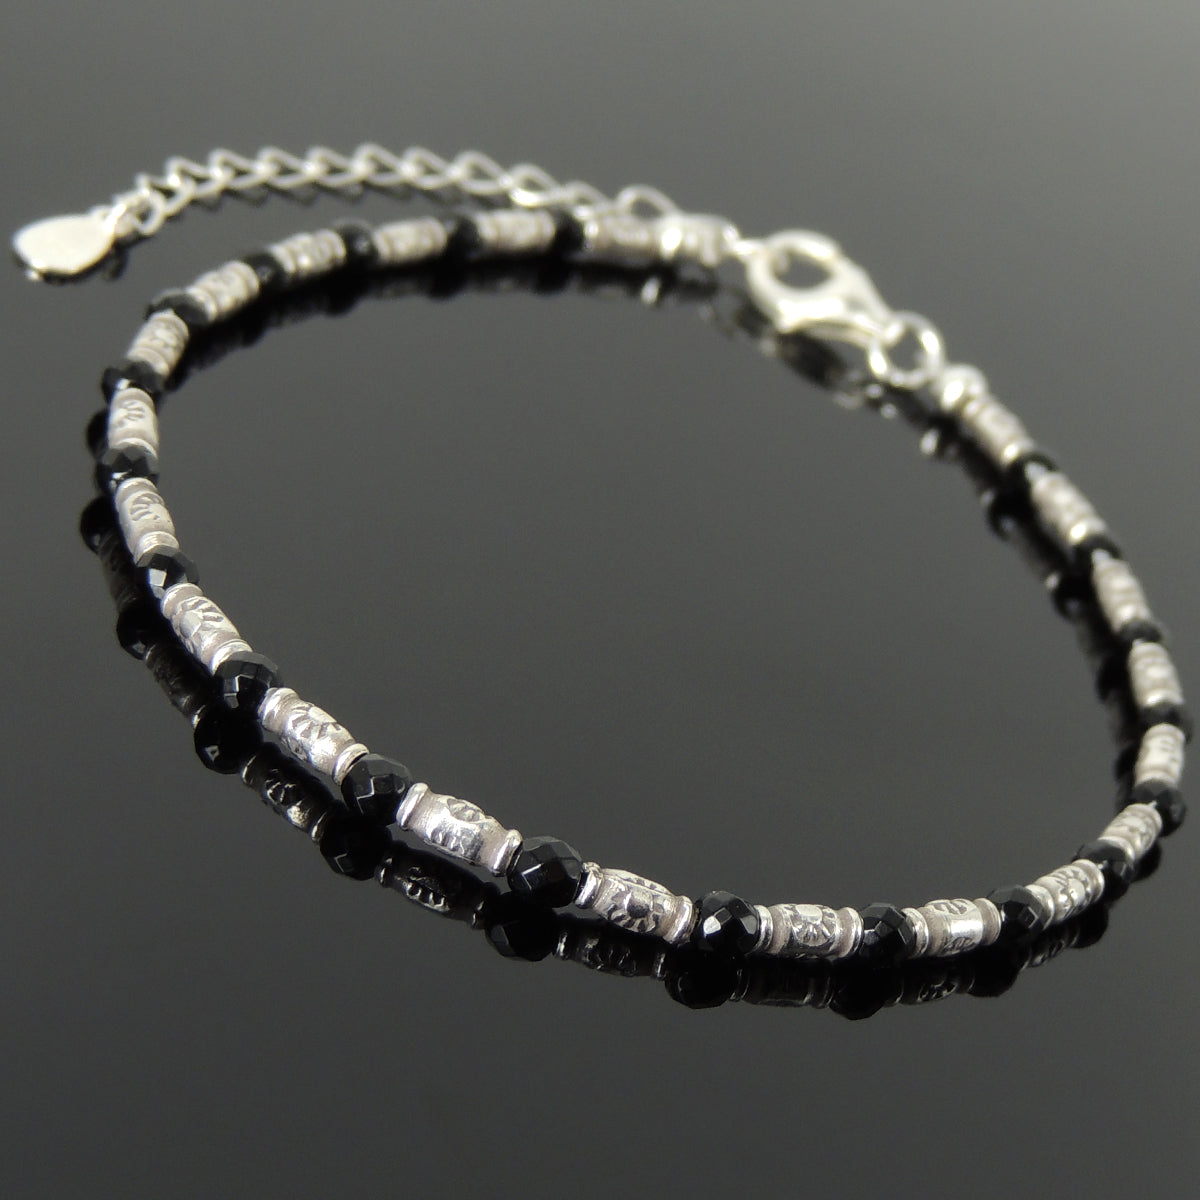 3mm Faceted Black Onyx Healing Gemstone Bracelet with S925 Sterling Silver Vintage Sun Barrel Beads & Clasp - Handmade by Gem & Silver BR1299